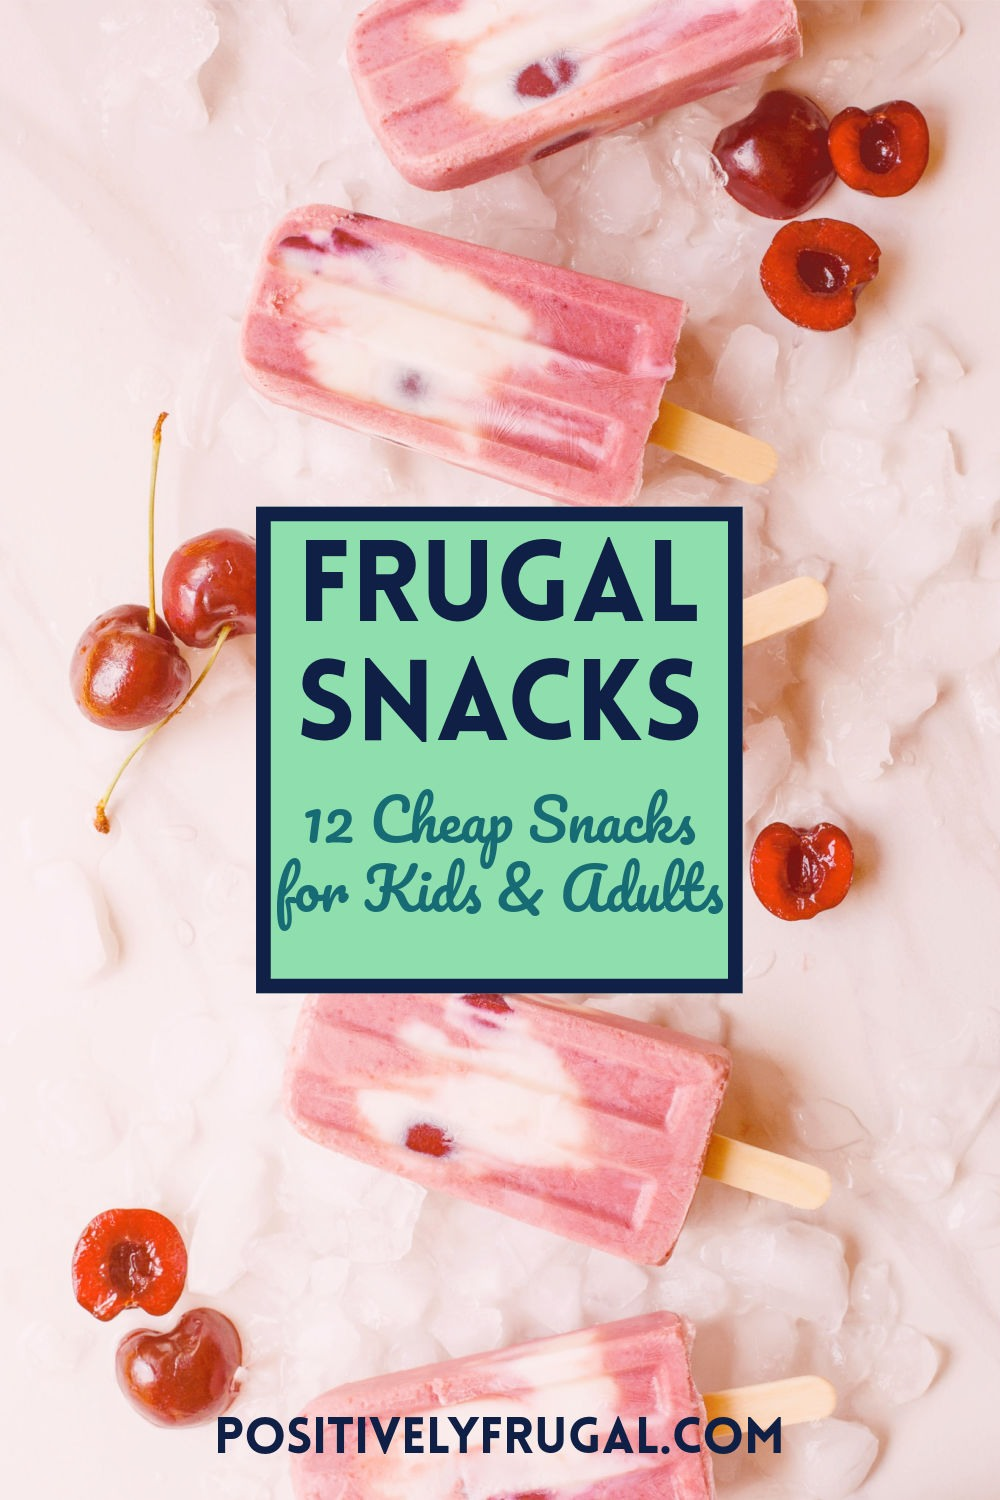 Frugal Snacks for Kids and Adults by PositivelyFrugal.com